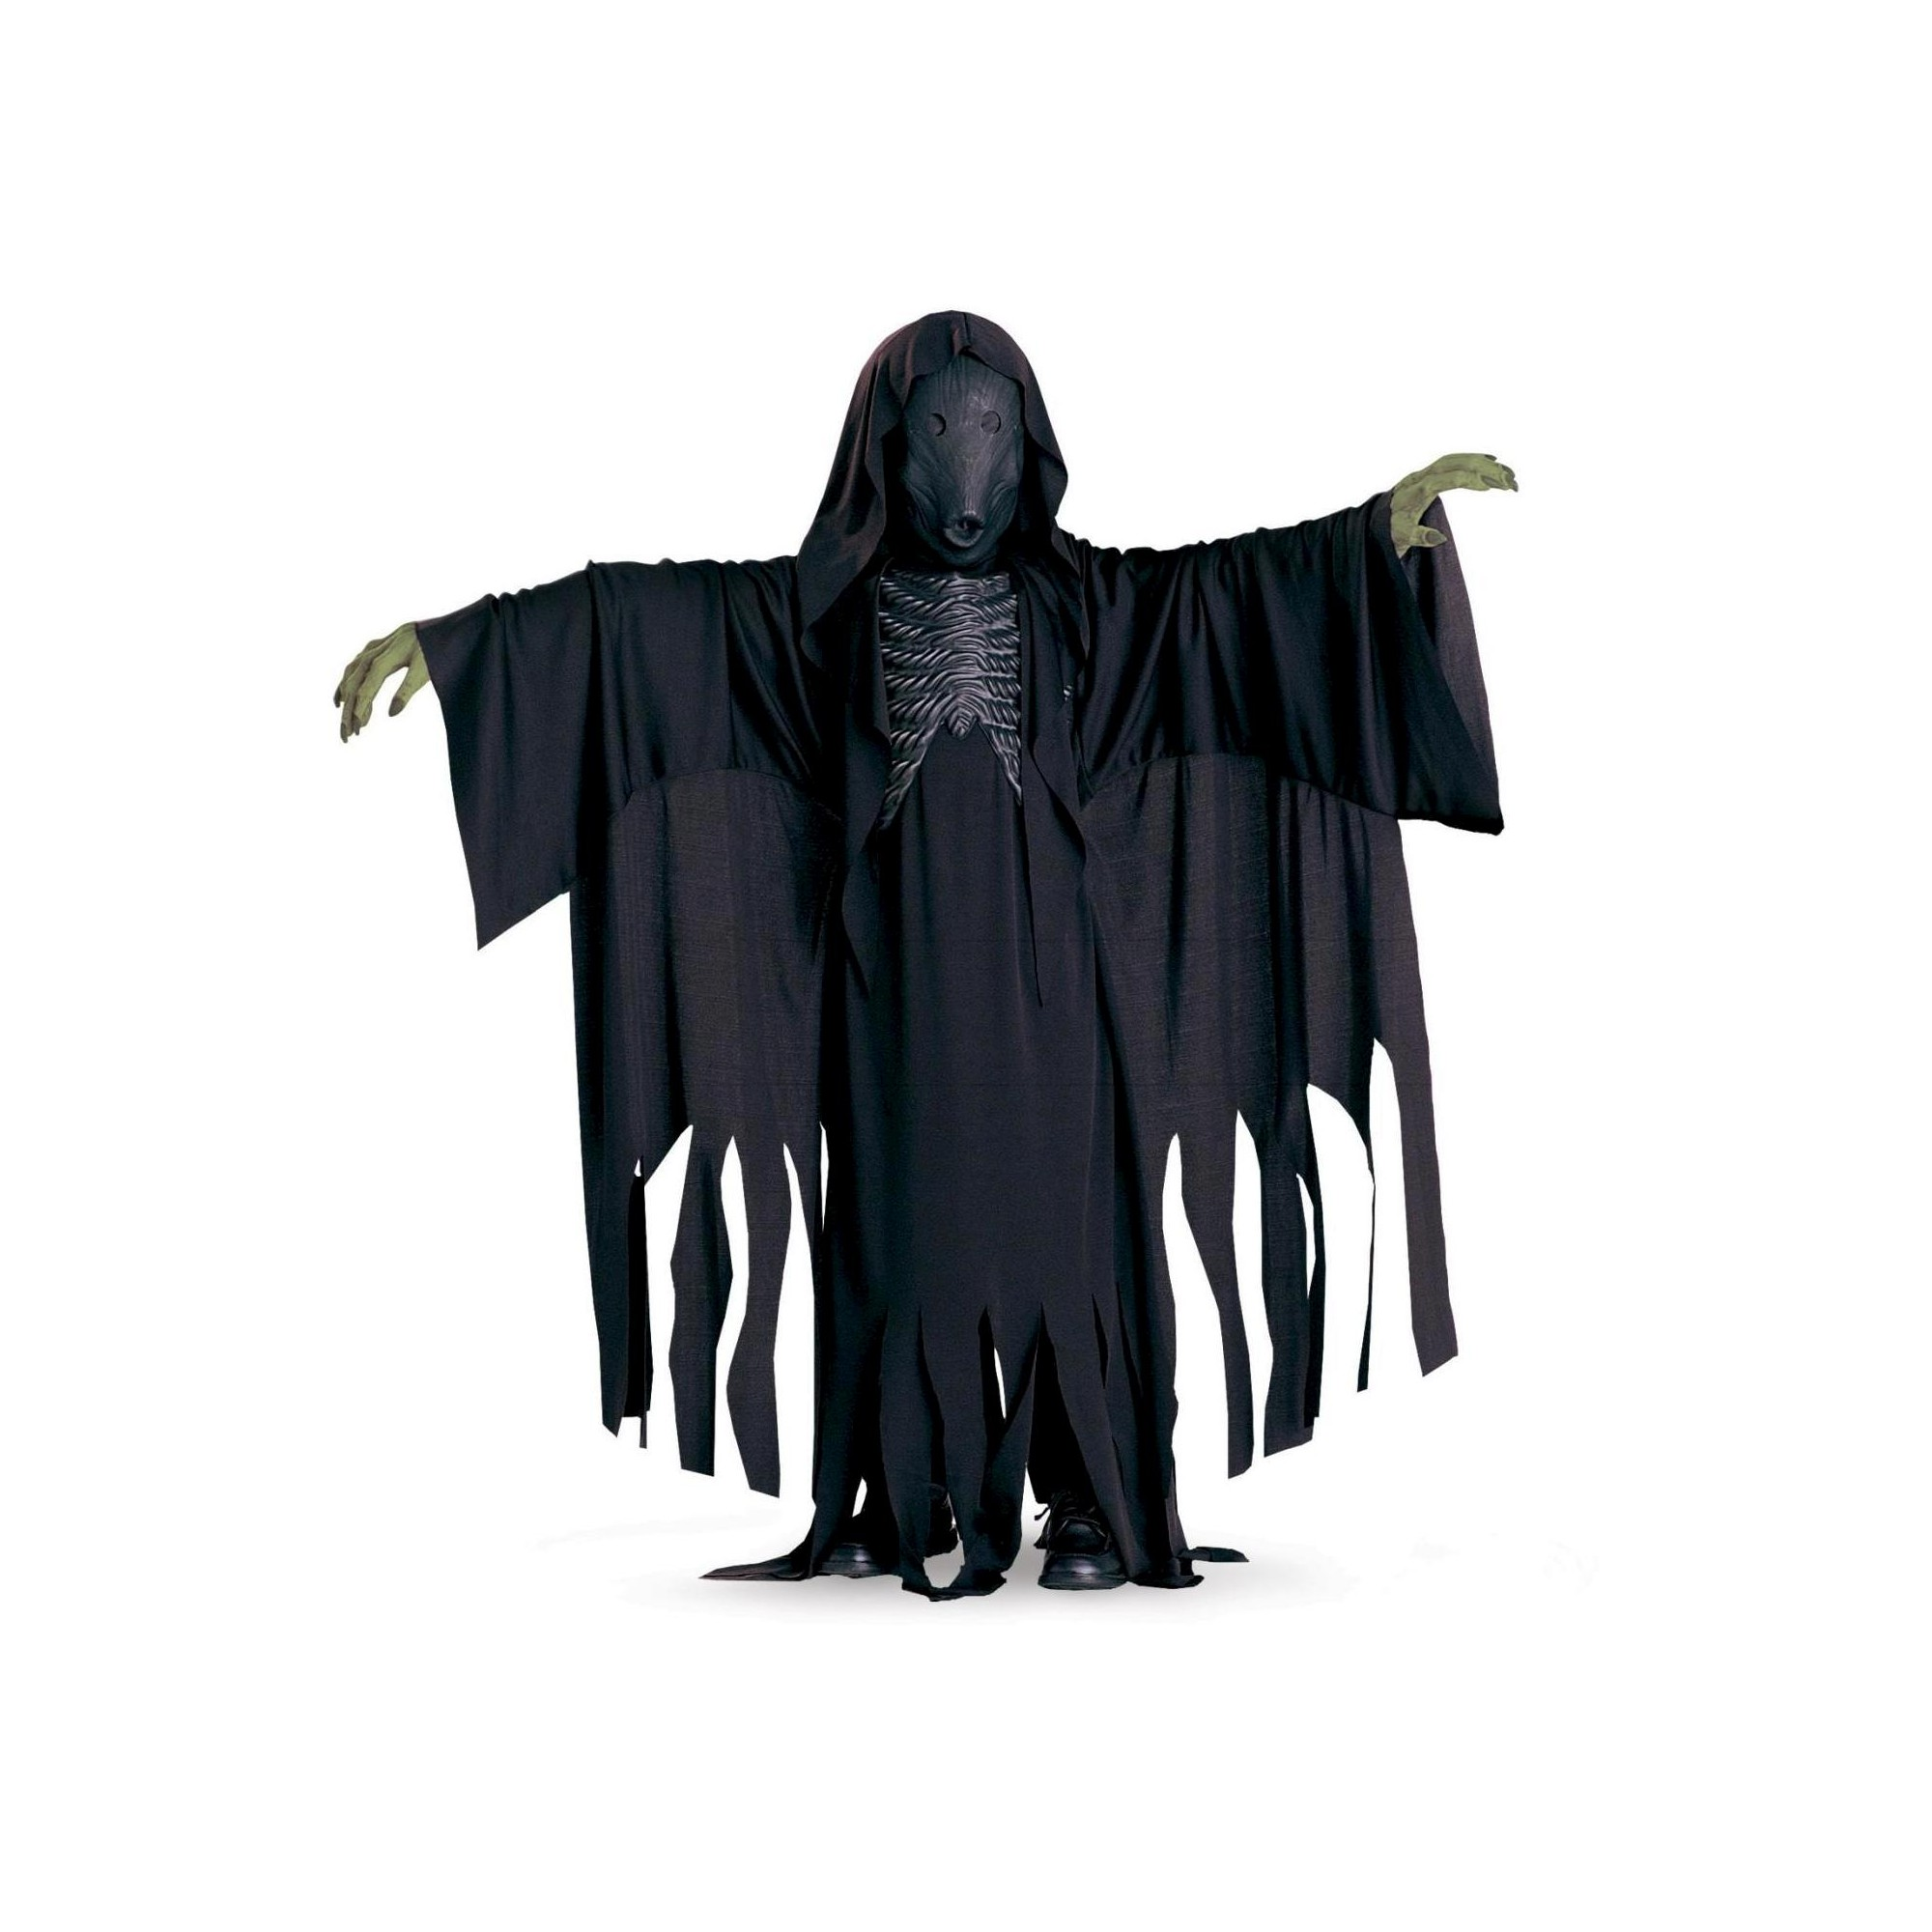 halloween kids harry potter dementor costume large kids unisex black